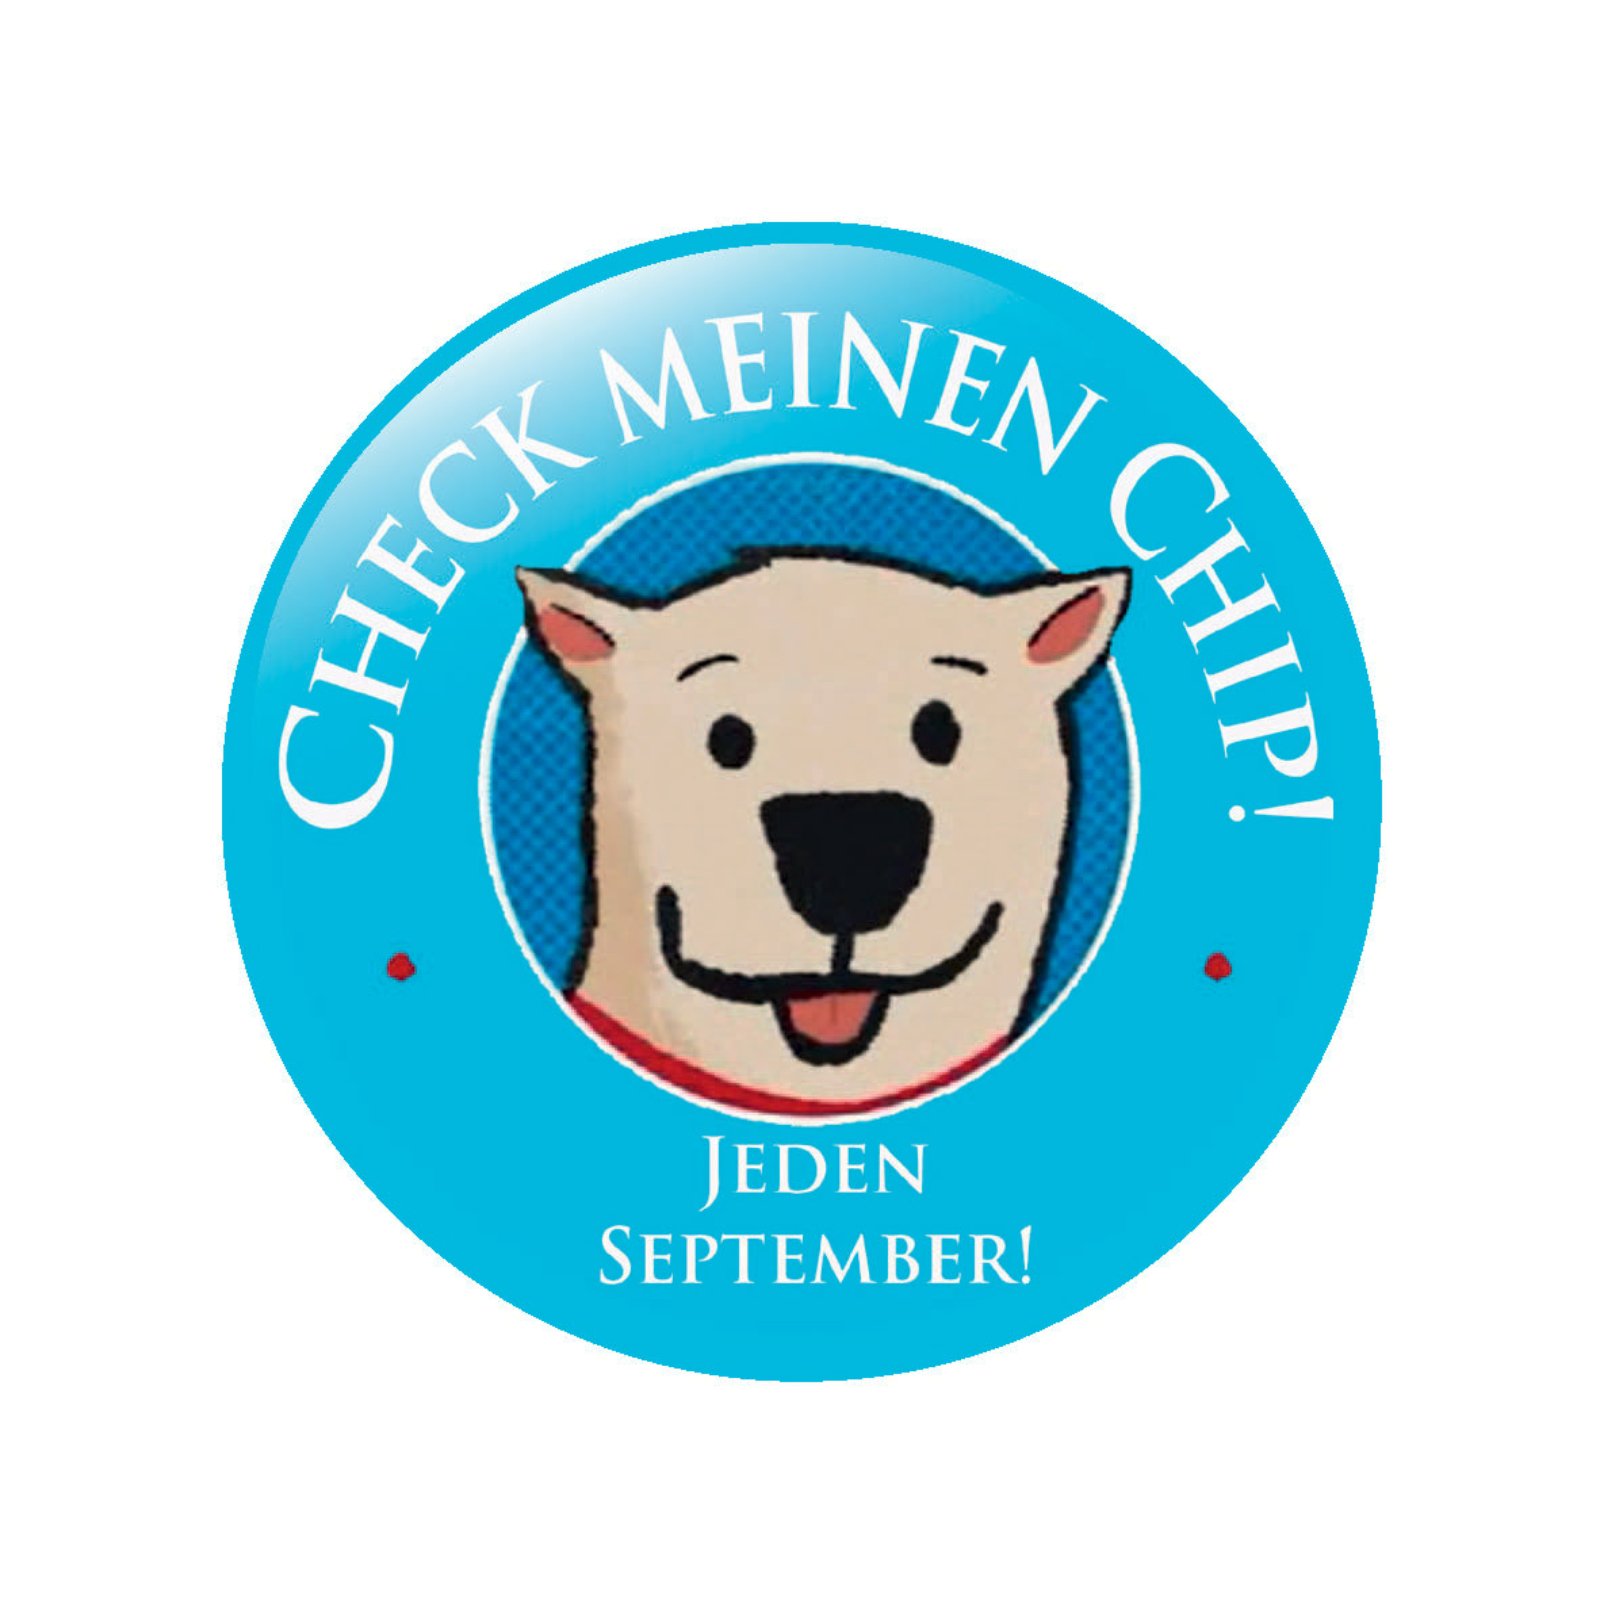 https://www.tieraerzteverband.de/media/img/Check-meinen-Chip_Logo.jpg